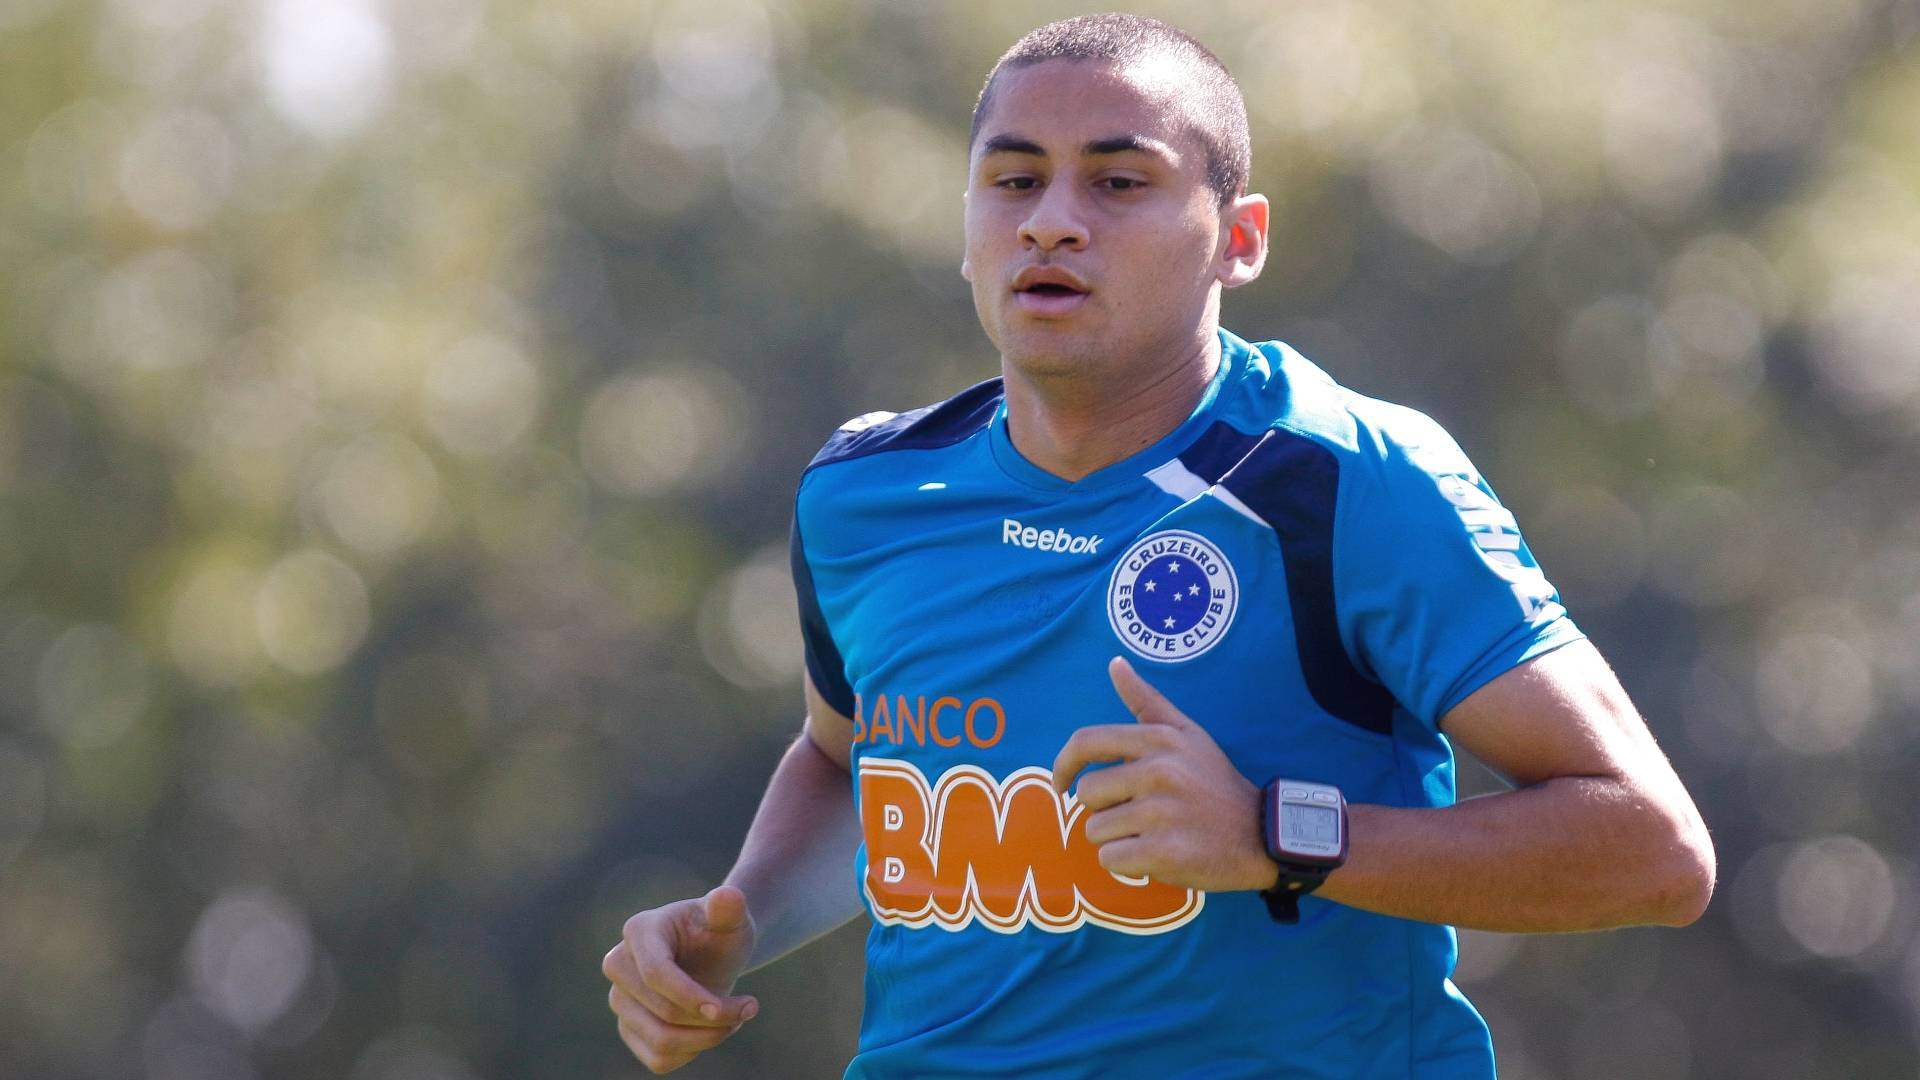 Wellington Paulista volta a treinar no Cruzeiro (9/8/2011)